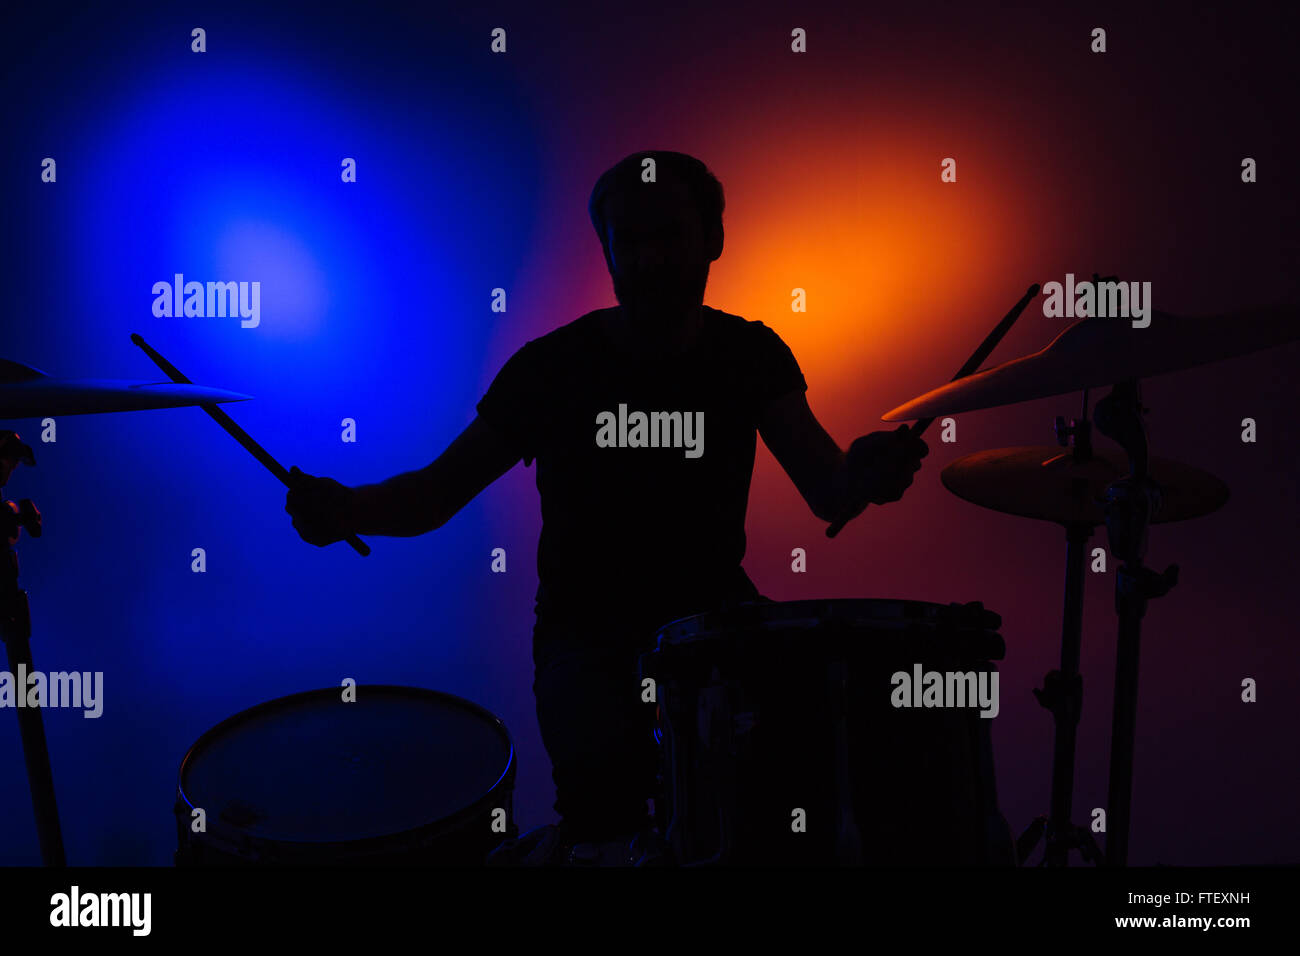 Silhouette of man drummer sitting and playing drums with sticks over colorful backgound - Stock Image